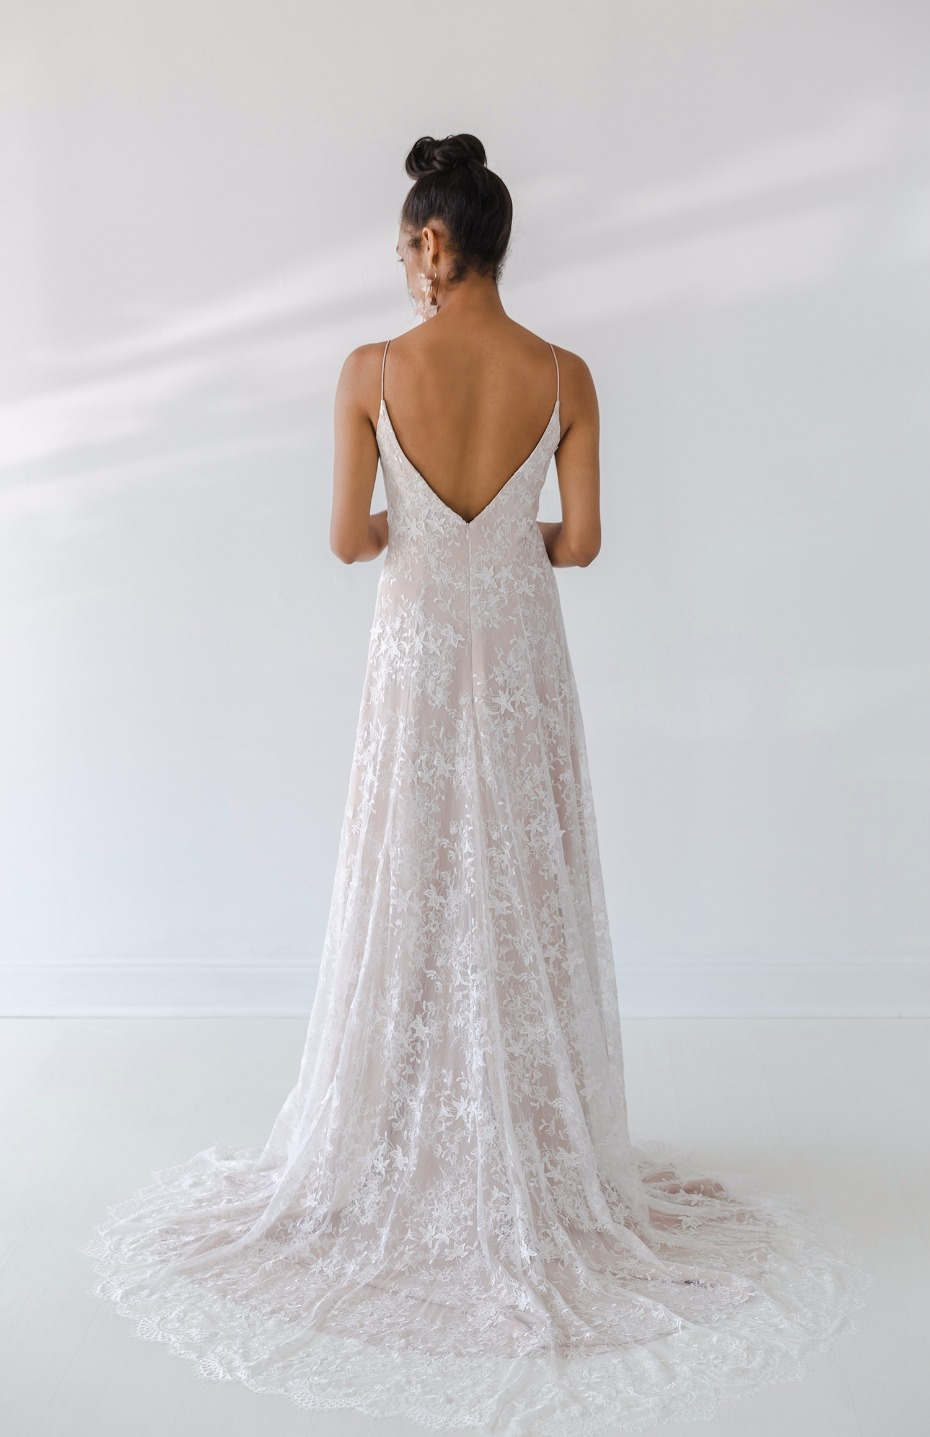 Ivy & Aster Fall 2018 Bridal Collection Giselle